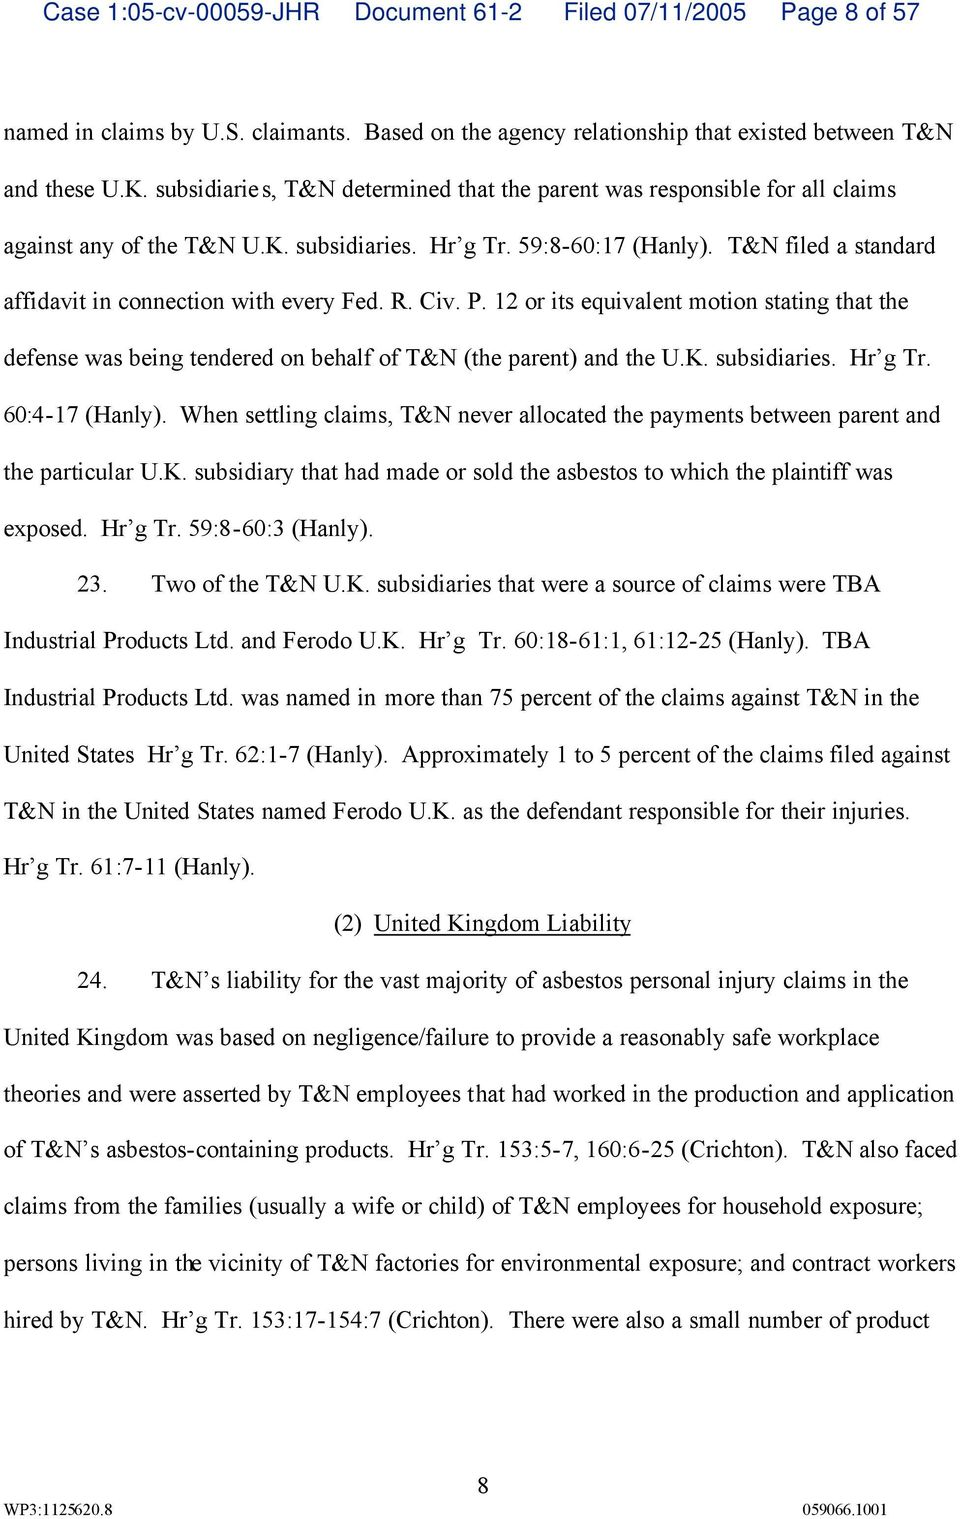 T&N filed a standard affidavit in connection with every Fed. R. Civ. P. 12 or its equivalent motion stating that the defense was being tendered on behalf of T&N (the parent) and the U.K. subsidiaries.